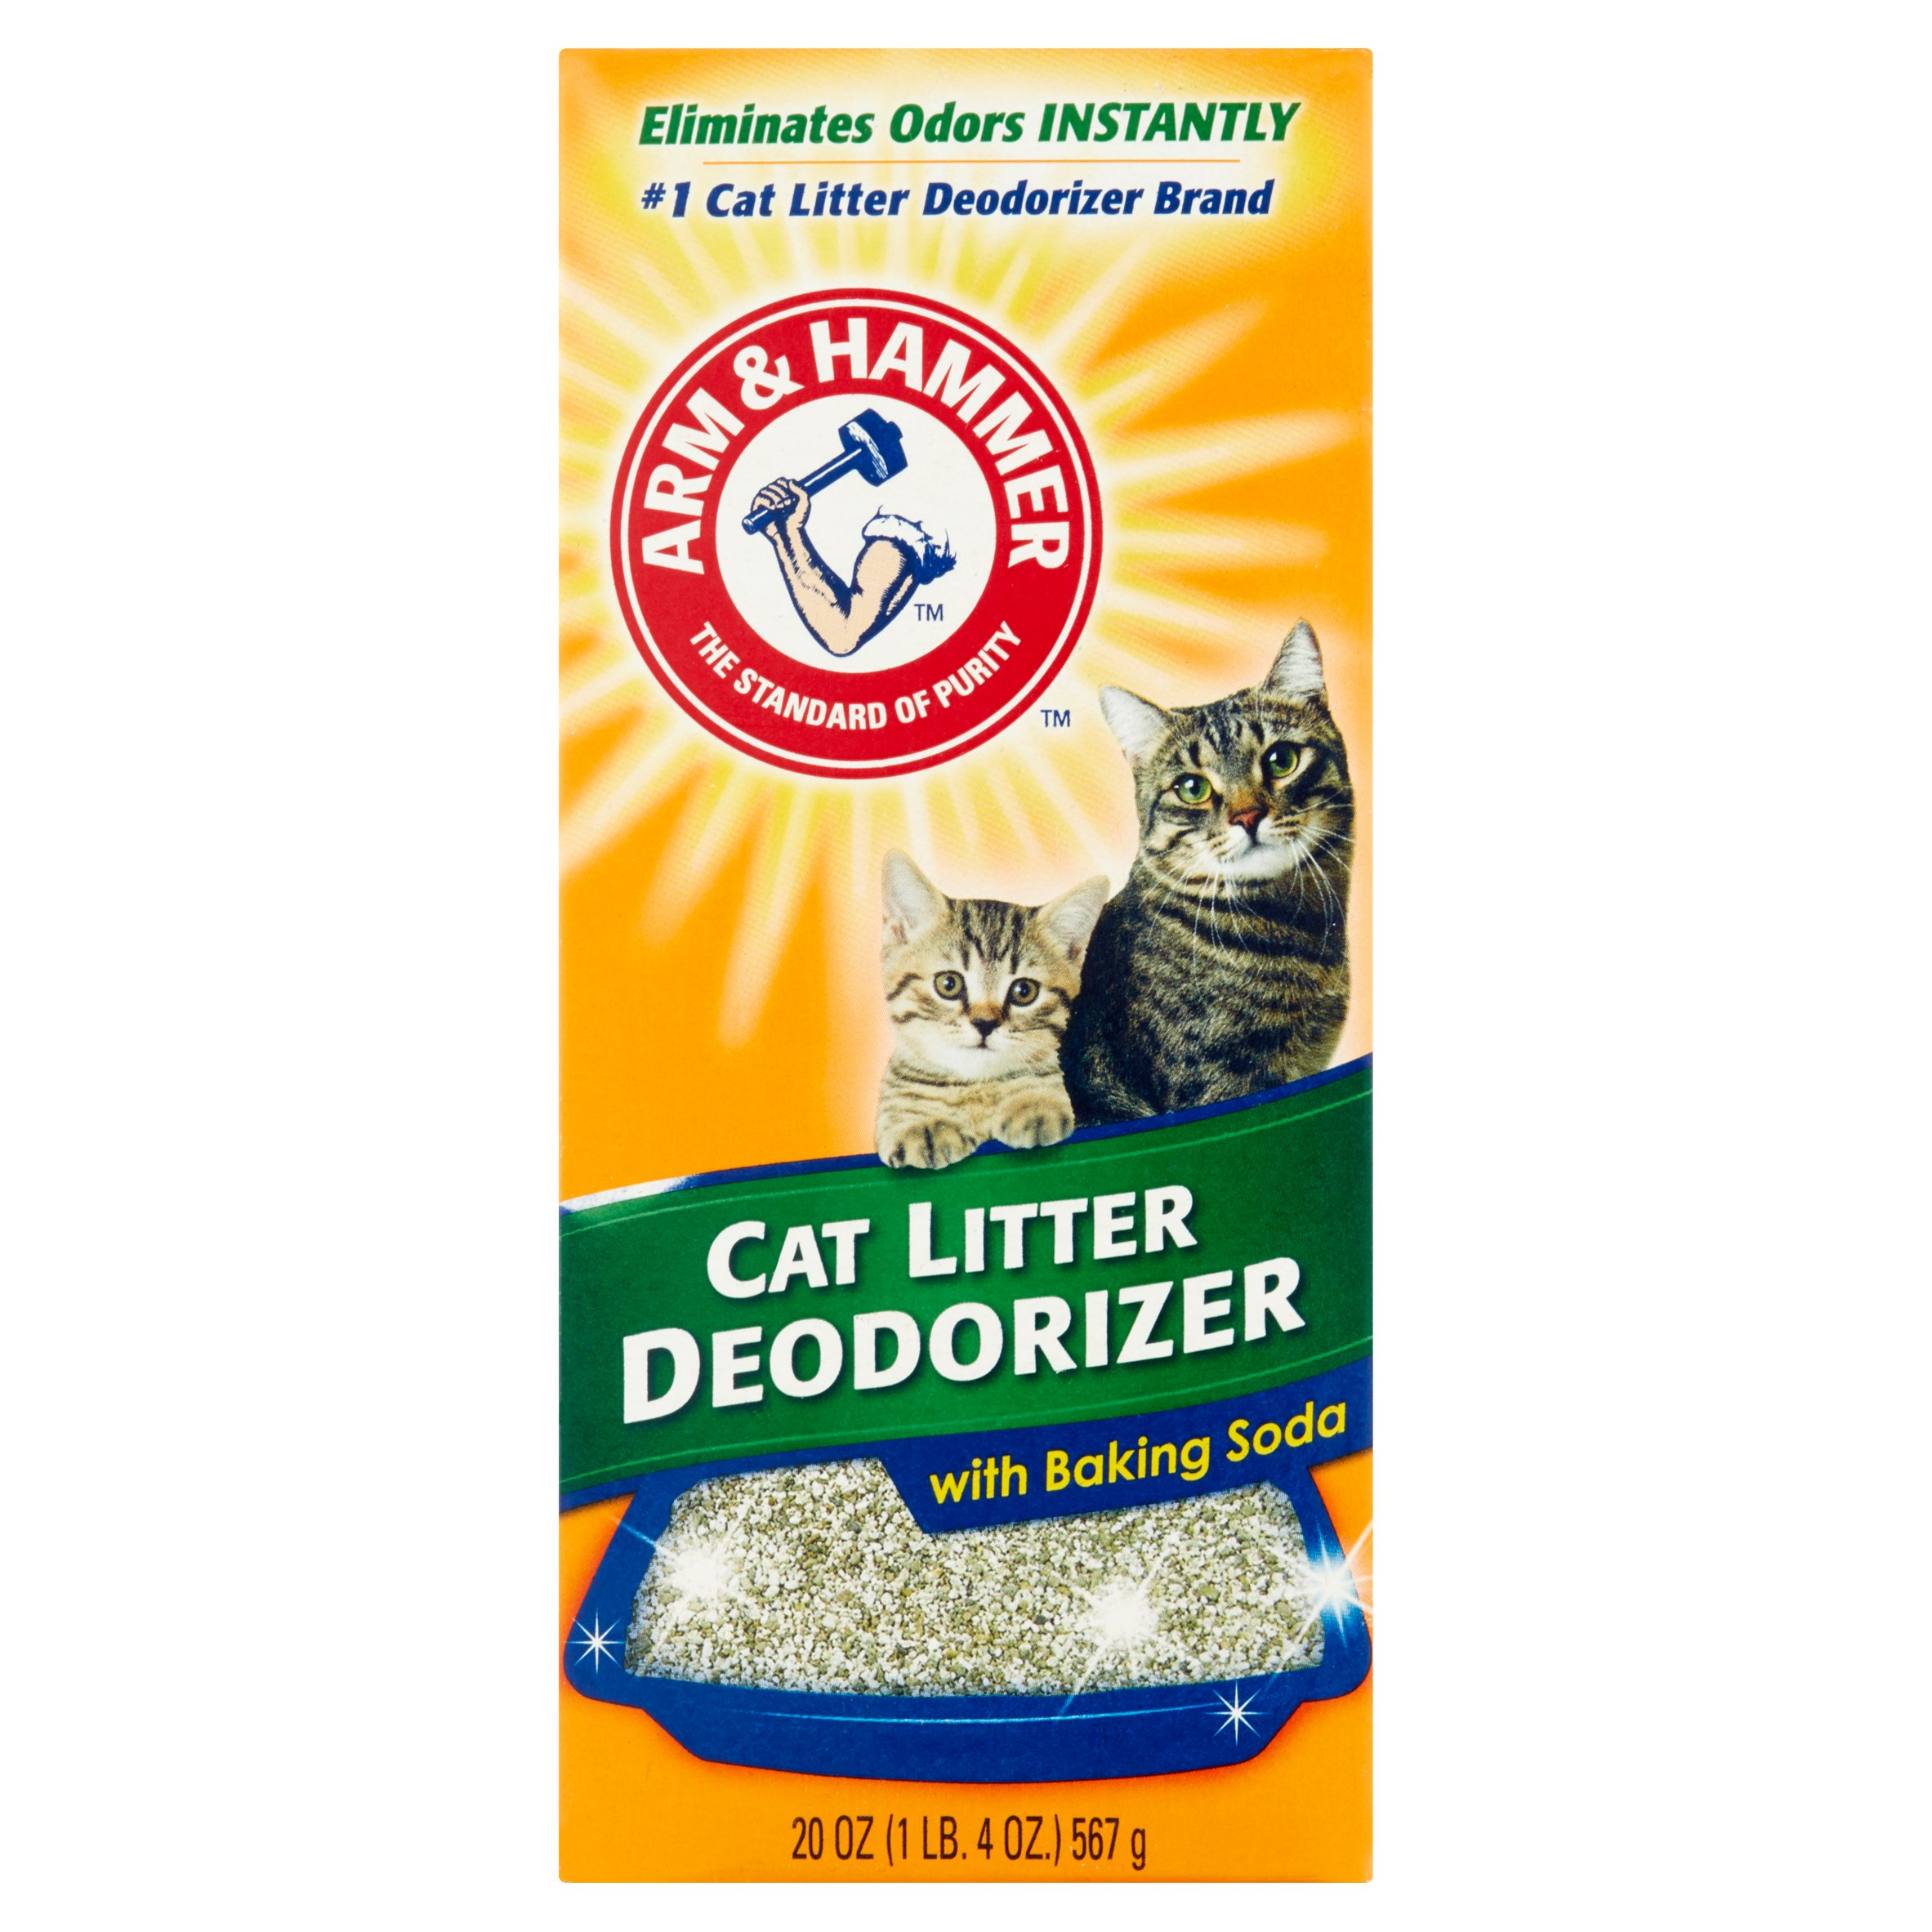 Arm & Hammer Cat Litter Deodorizer with Baking Soda, 20 oz